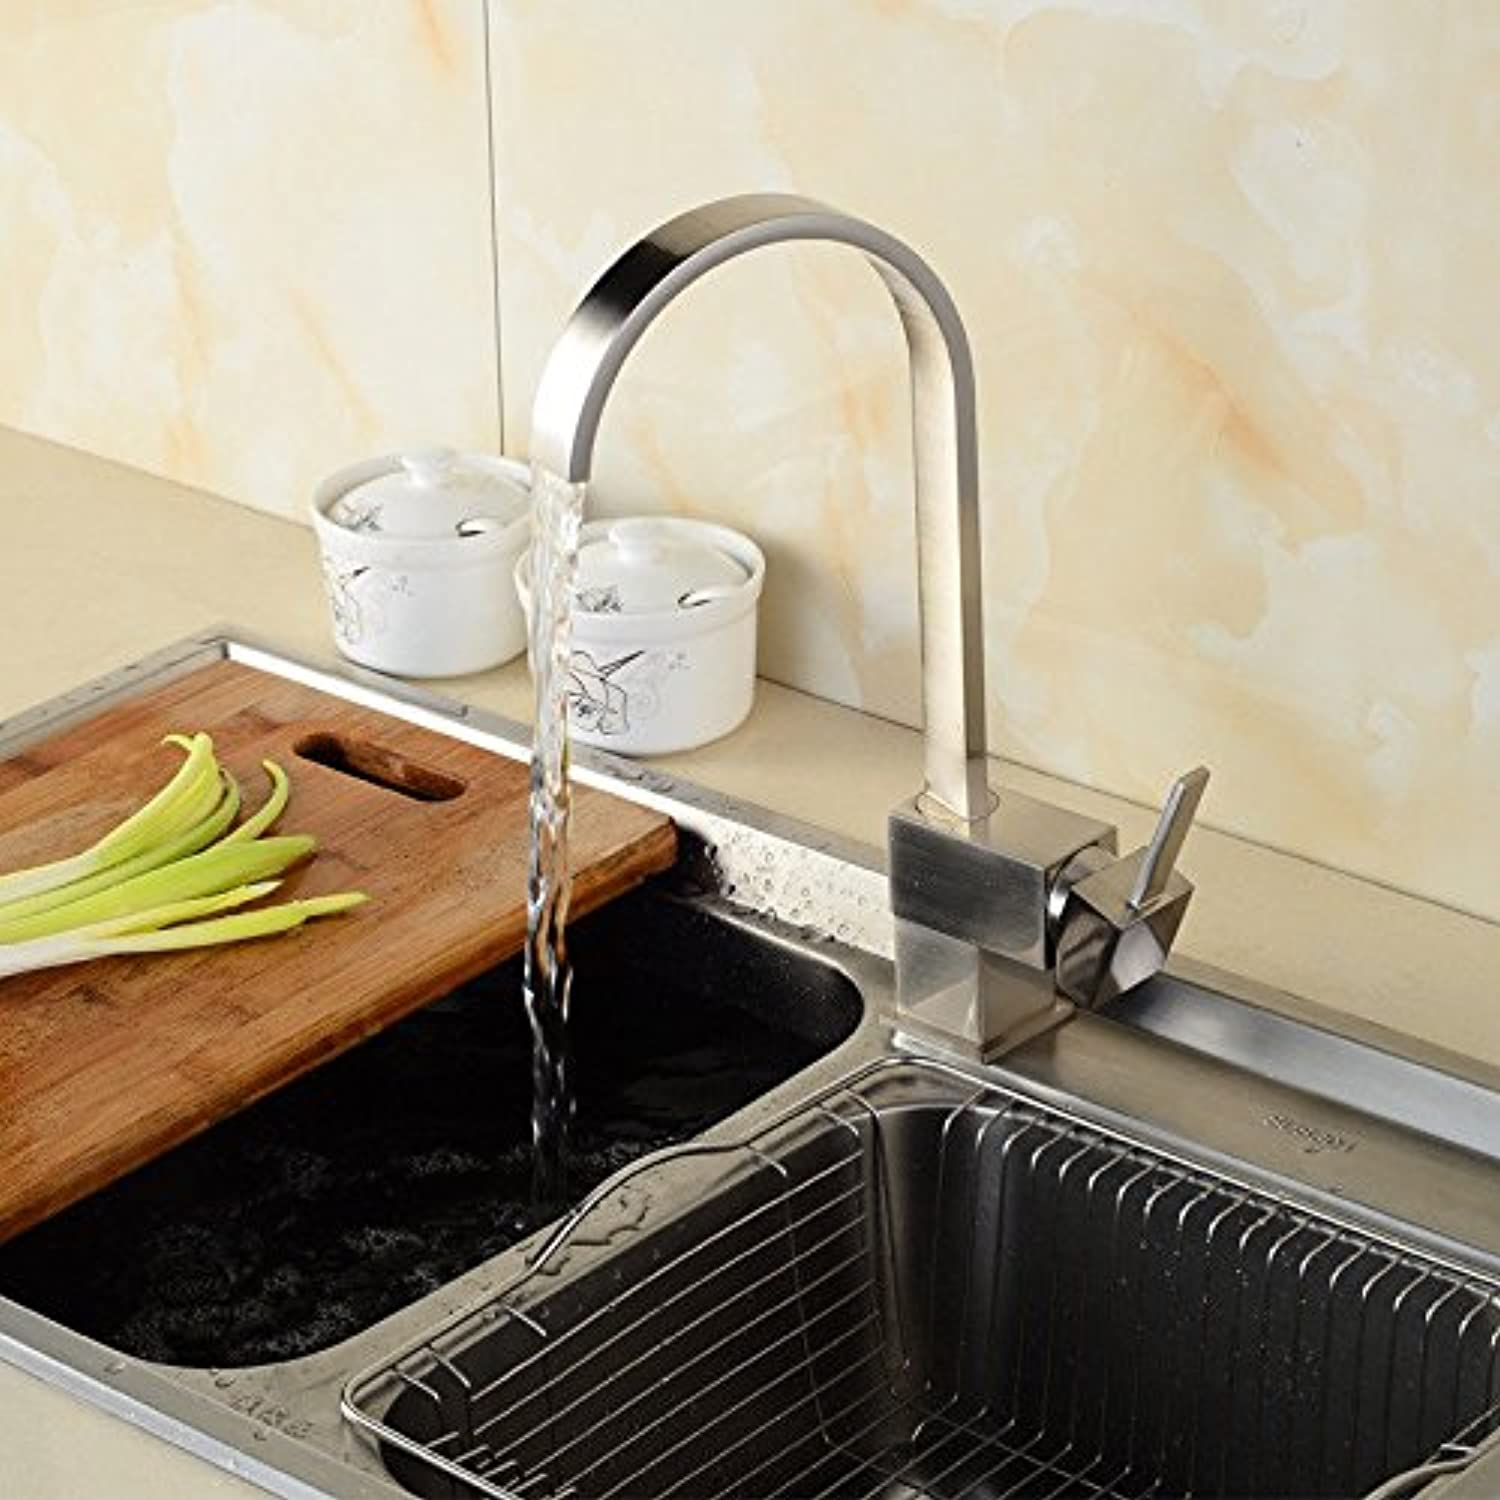 Hlluya Professional Sink Mixer Tap Kitchen Faucet The brass quartet faucet brushed antique kitchen cooking pots of hot and cold tap water faucet Single Handle faucet single hole faucet,